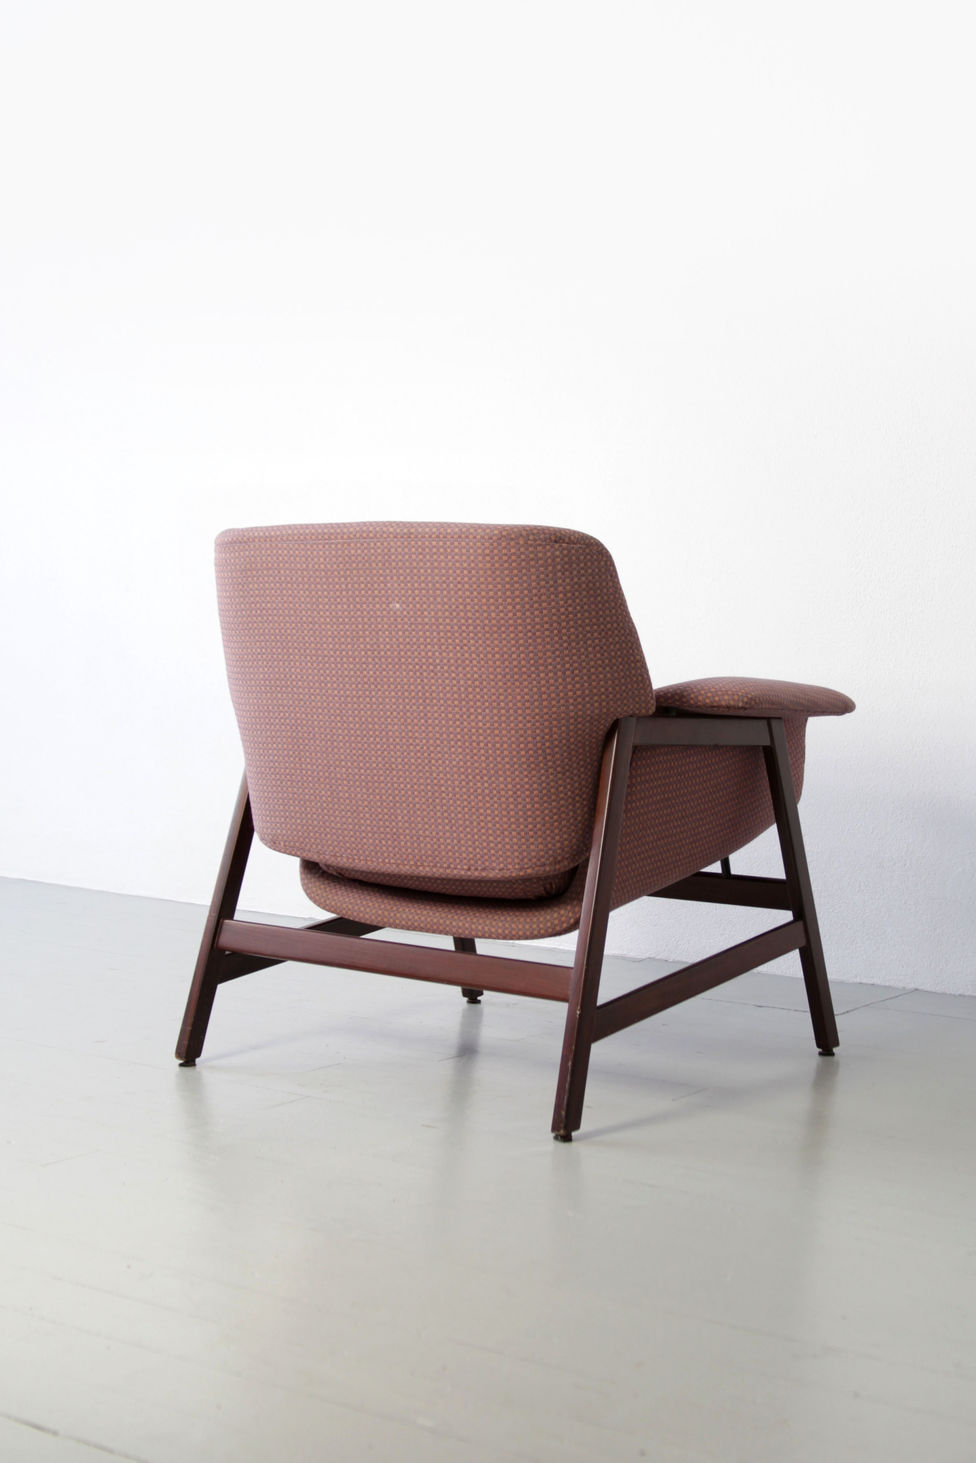 Frattini Sesselpaar 849 Cassina